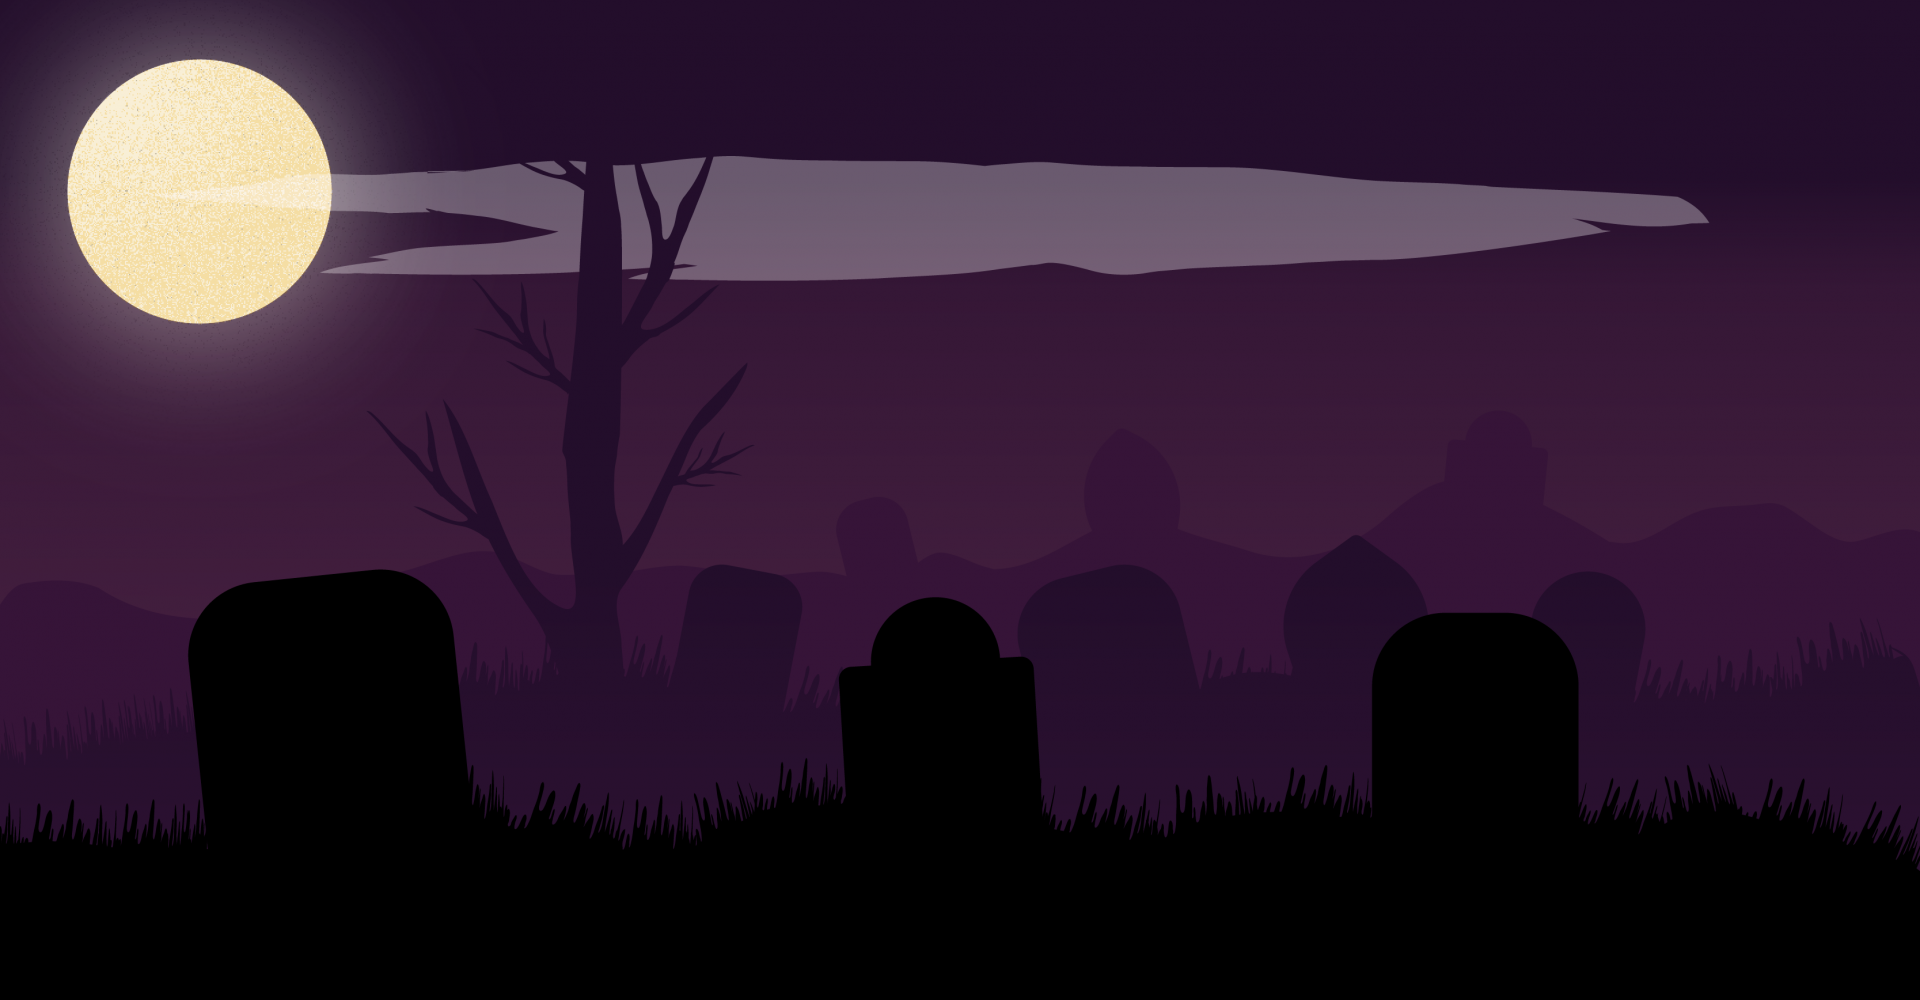 A full moon over a graveyard and spooky purple sky.